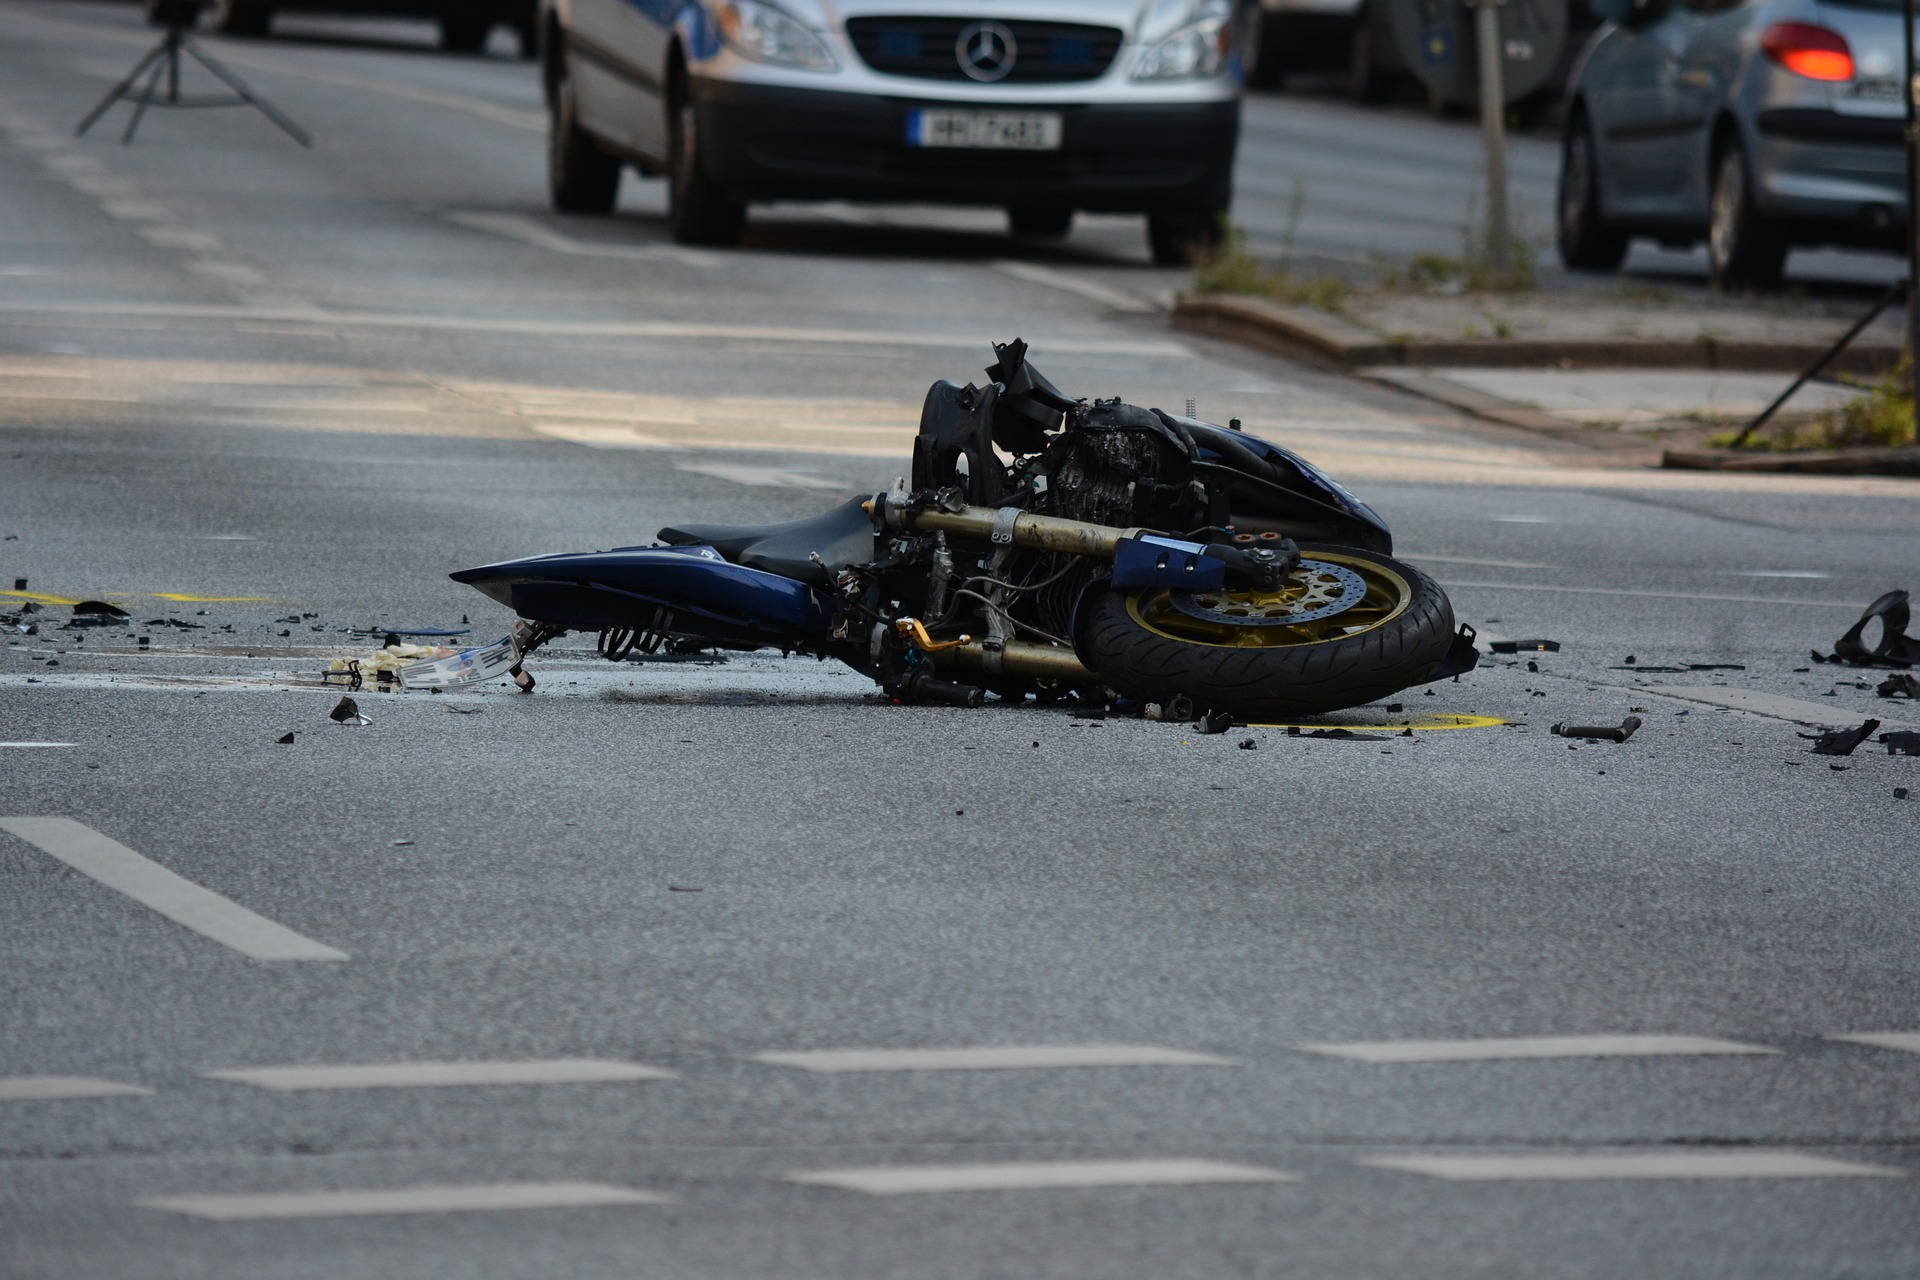 A Wrecked Motorcycle